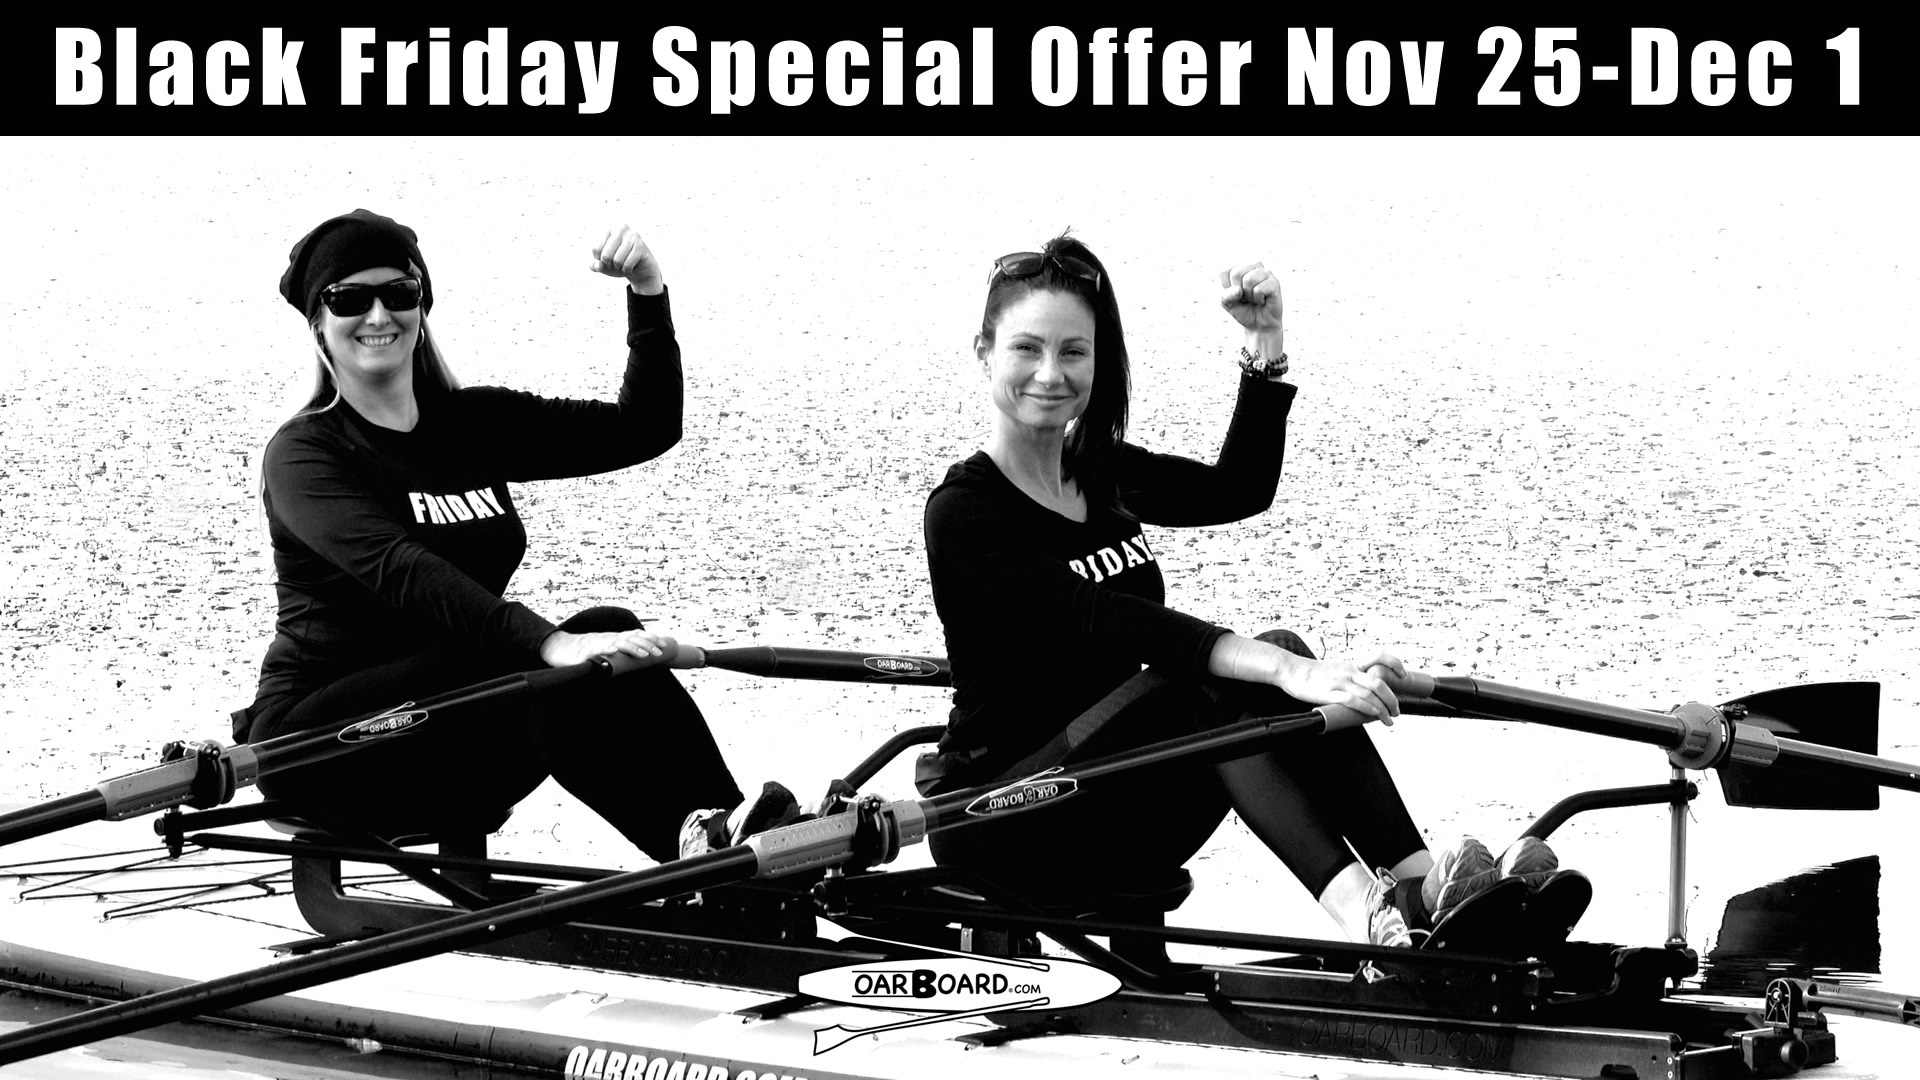 Black-Friday-Special-Offers-Oar-Board-SUP-Rower-2019-1920-pre